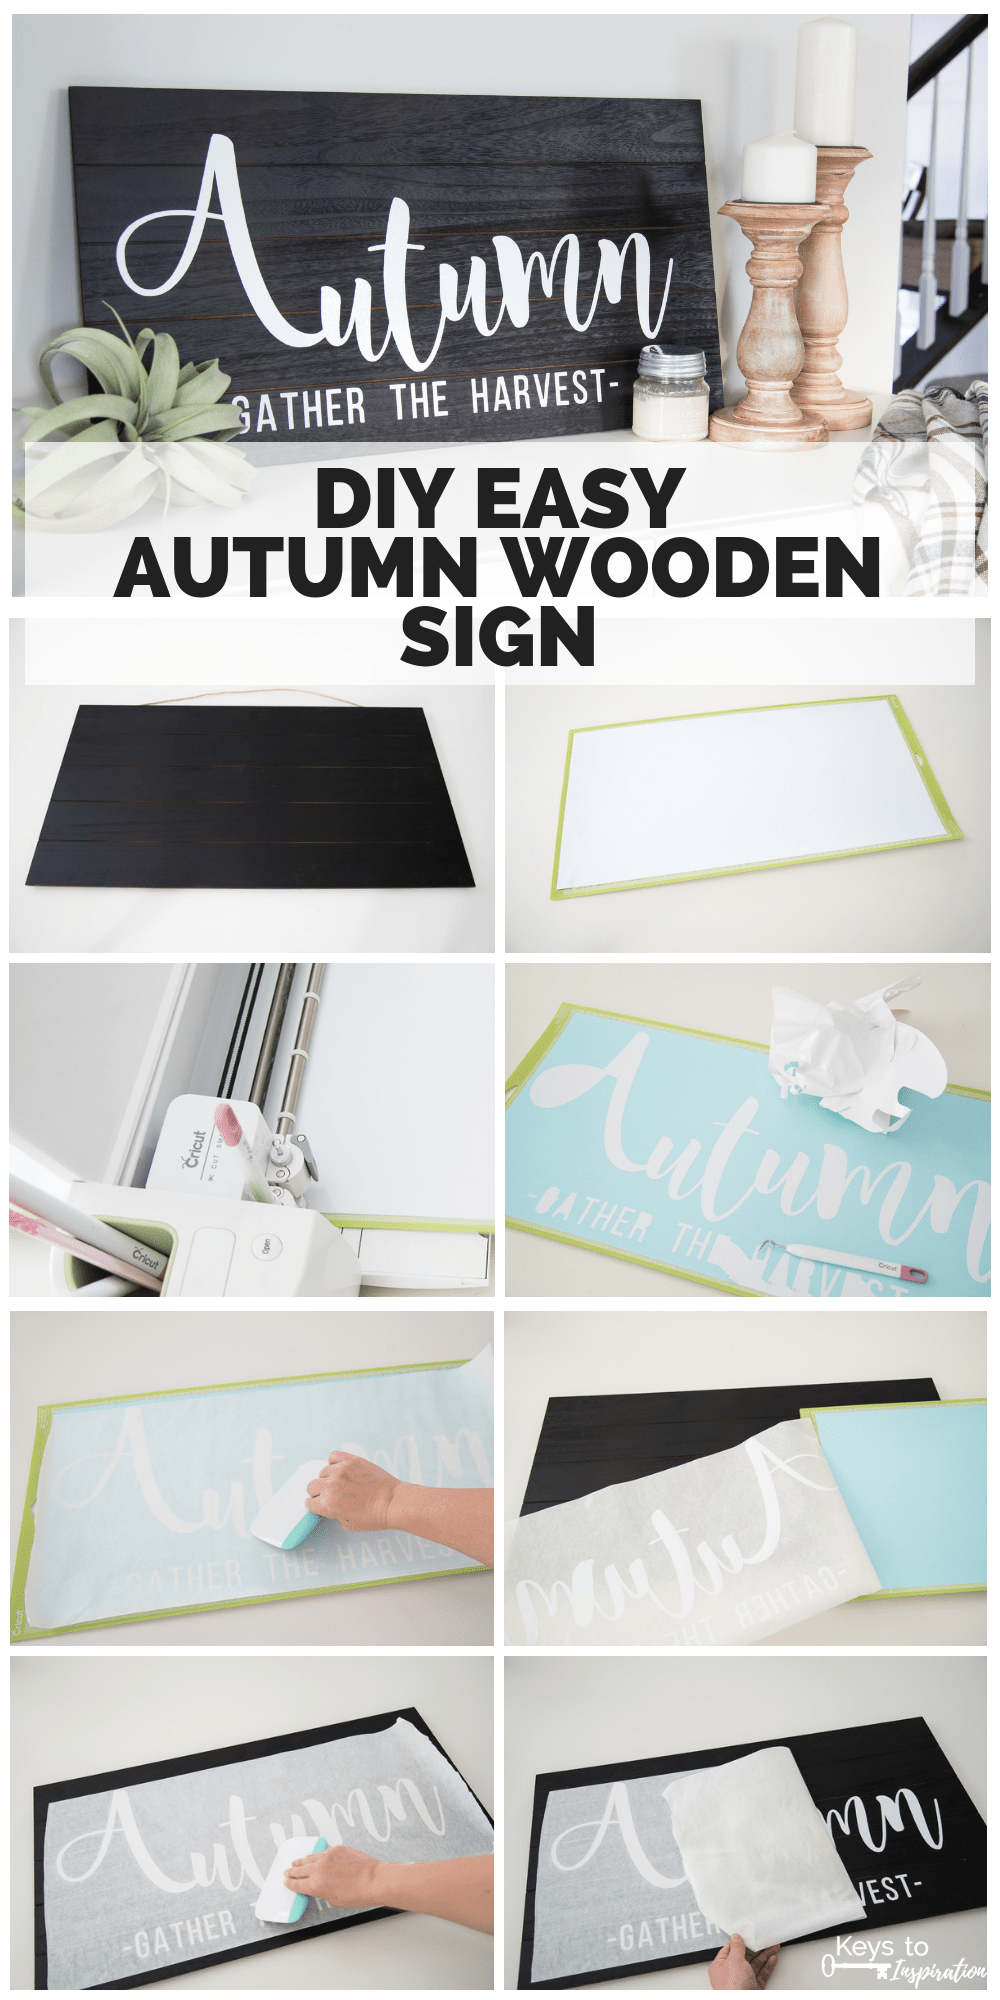 DIY Easy Autumn Wooden Sign -   17 diy projects Useful creative ideas